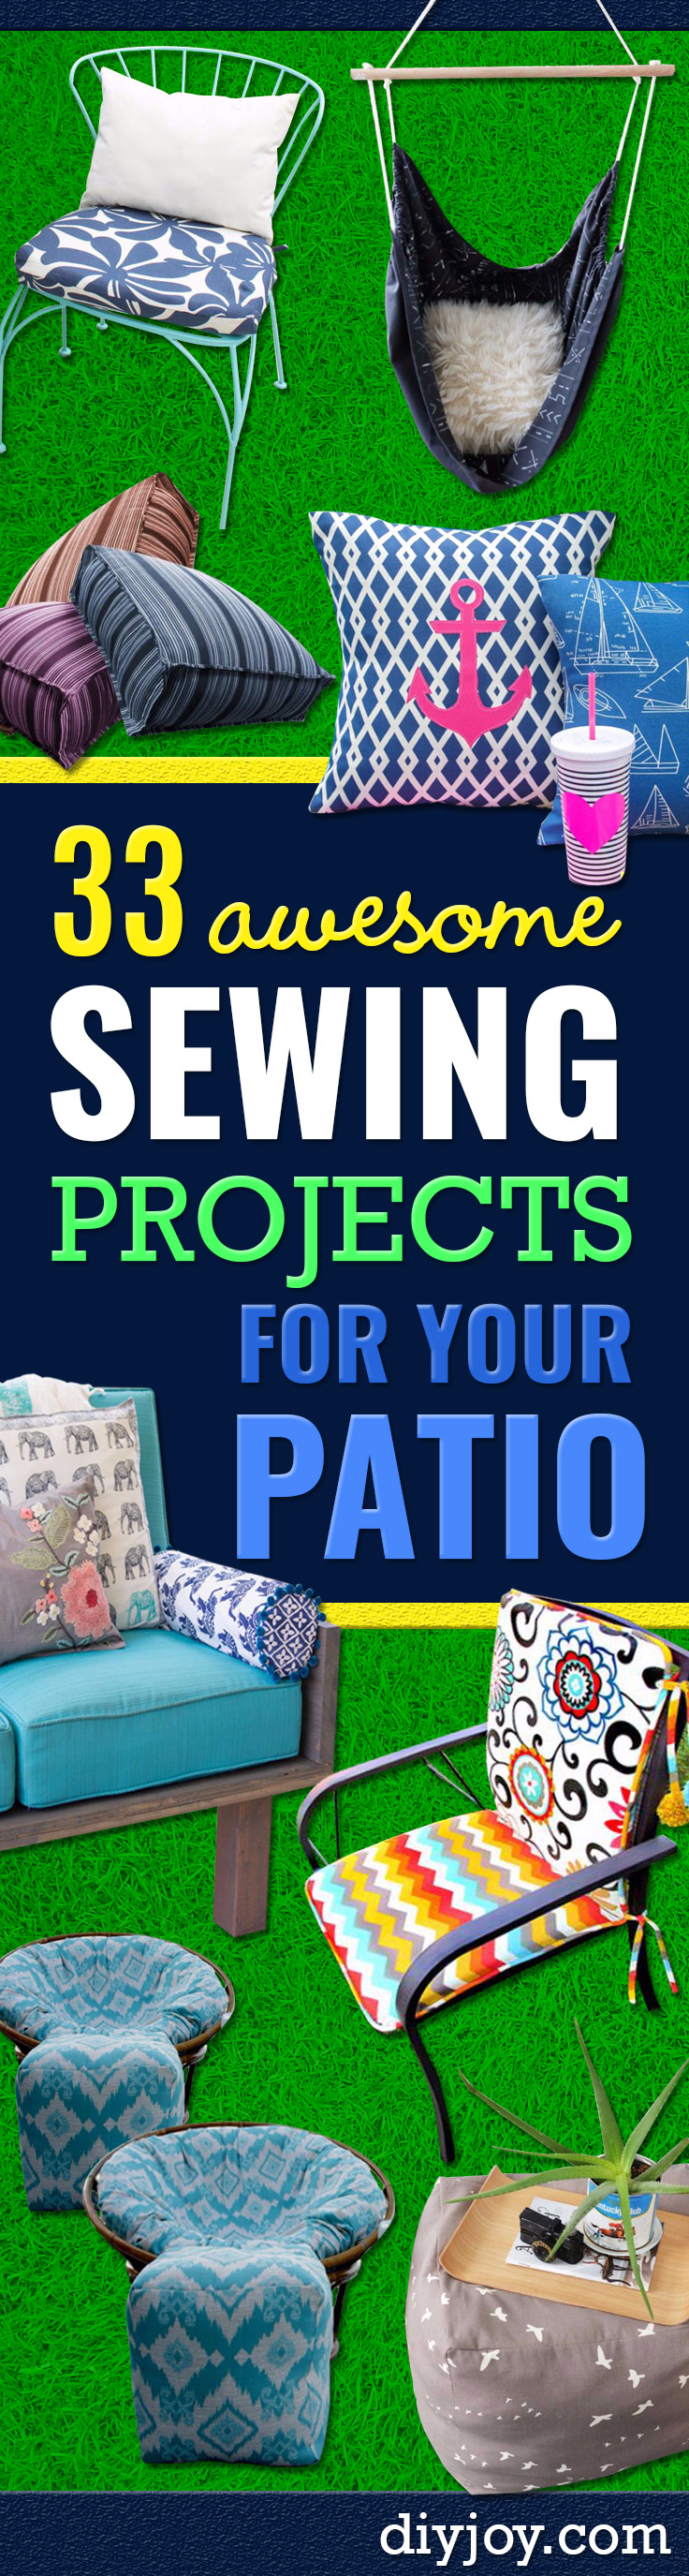 Sewing Projects for The Patio - Step by Step Instructions and Free Patterns for Cushions, Pillows, Seating, Sofa and Outdoor Patio Decor - Easy Sewing Tutorials for Beginners - Creative and Cheap Outdoor Ideas for Those Who Love to Sew - DIY Projects and Crafts by DIY JOY